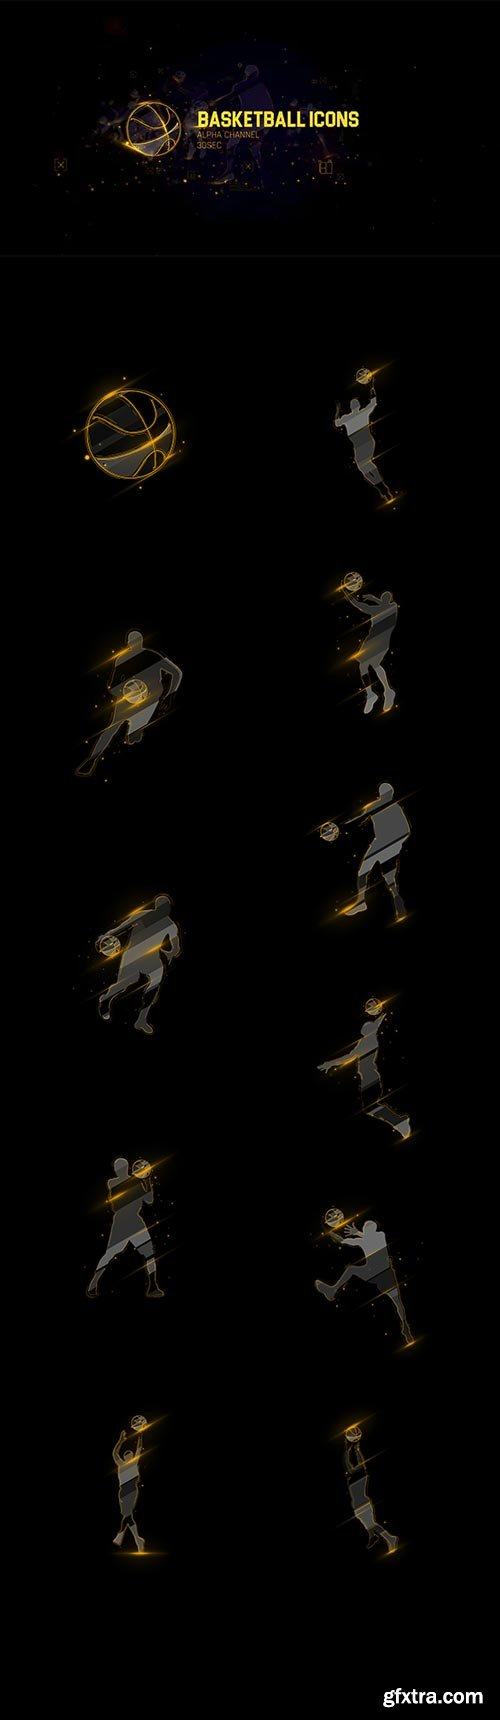 Videohive - 11 Basketball Icons Footage/ Sports and Actions/ Light and Gold Paricle/ NBA Games TV Broadcast Id - 20251722